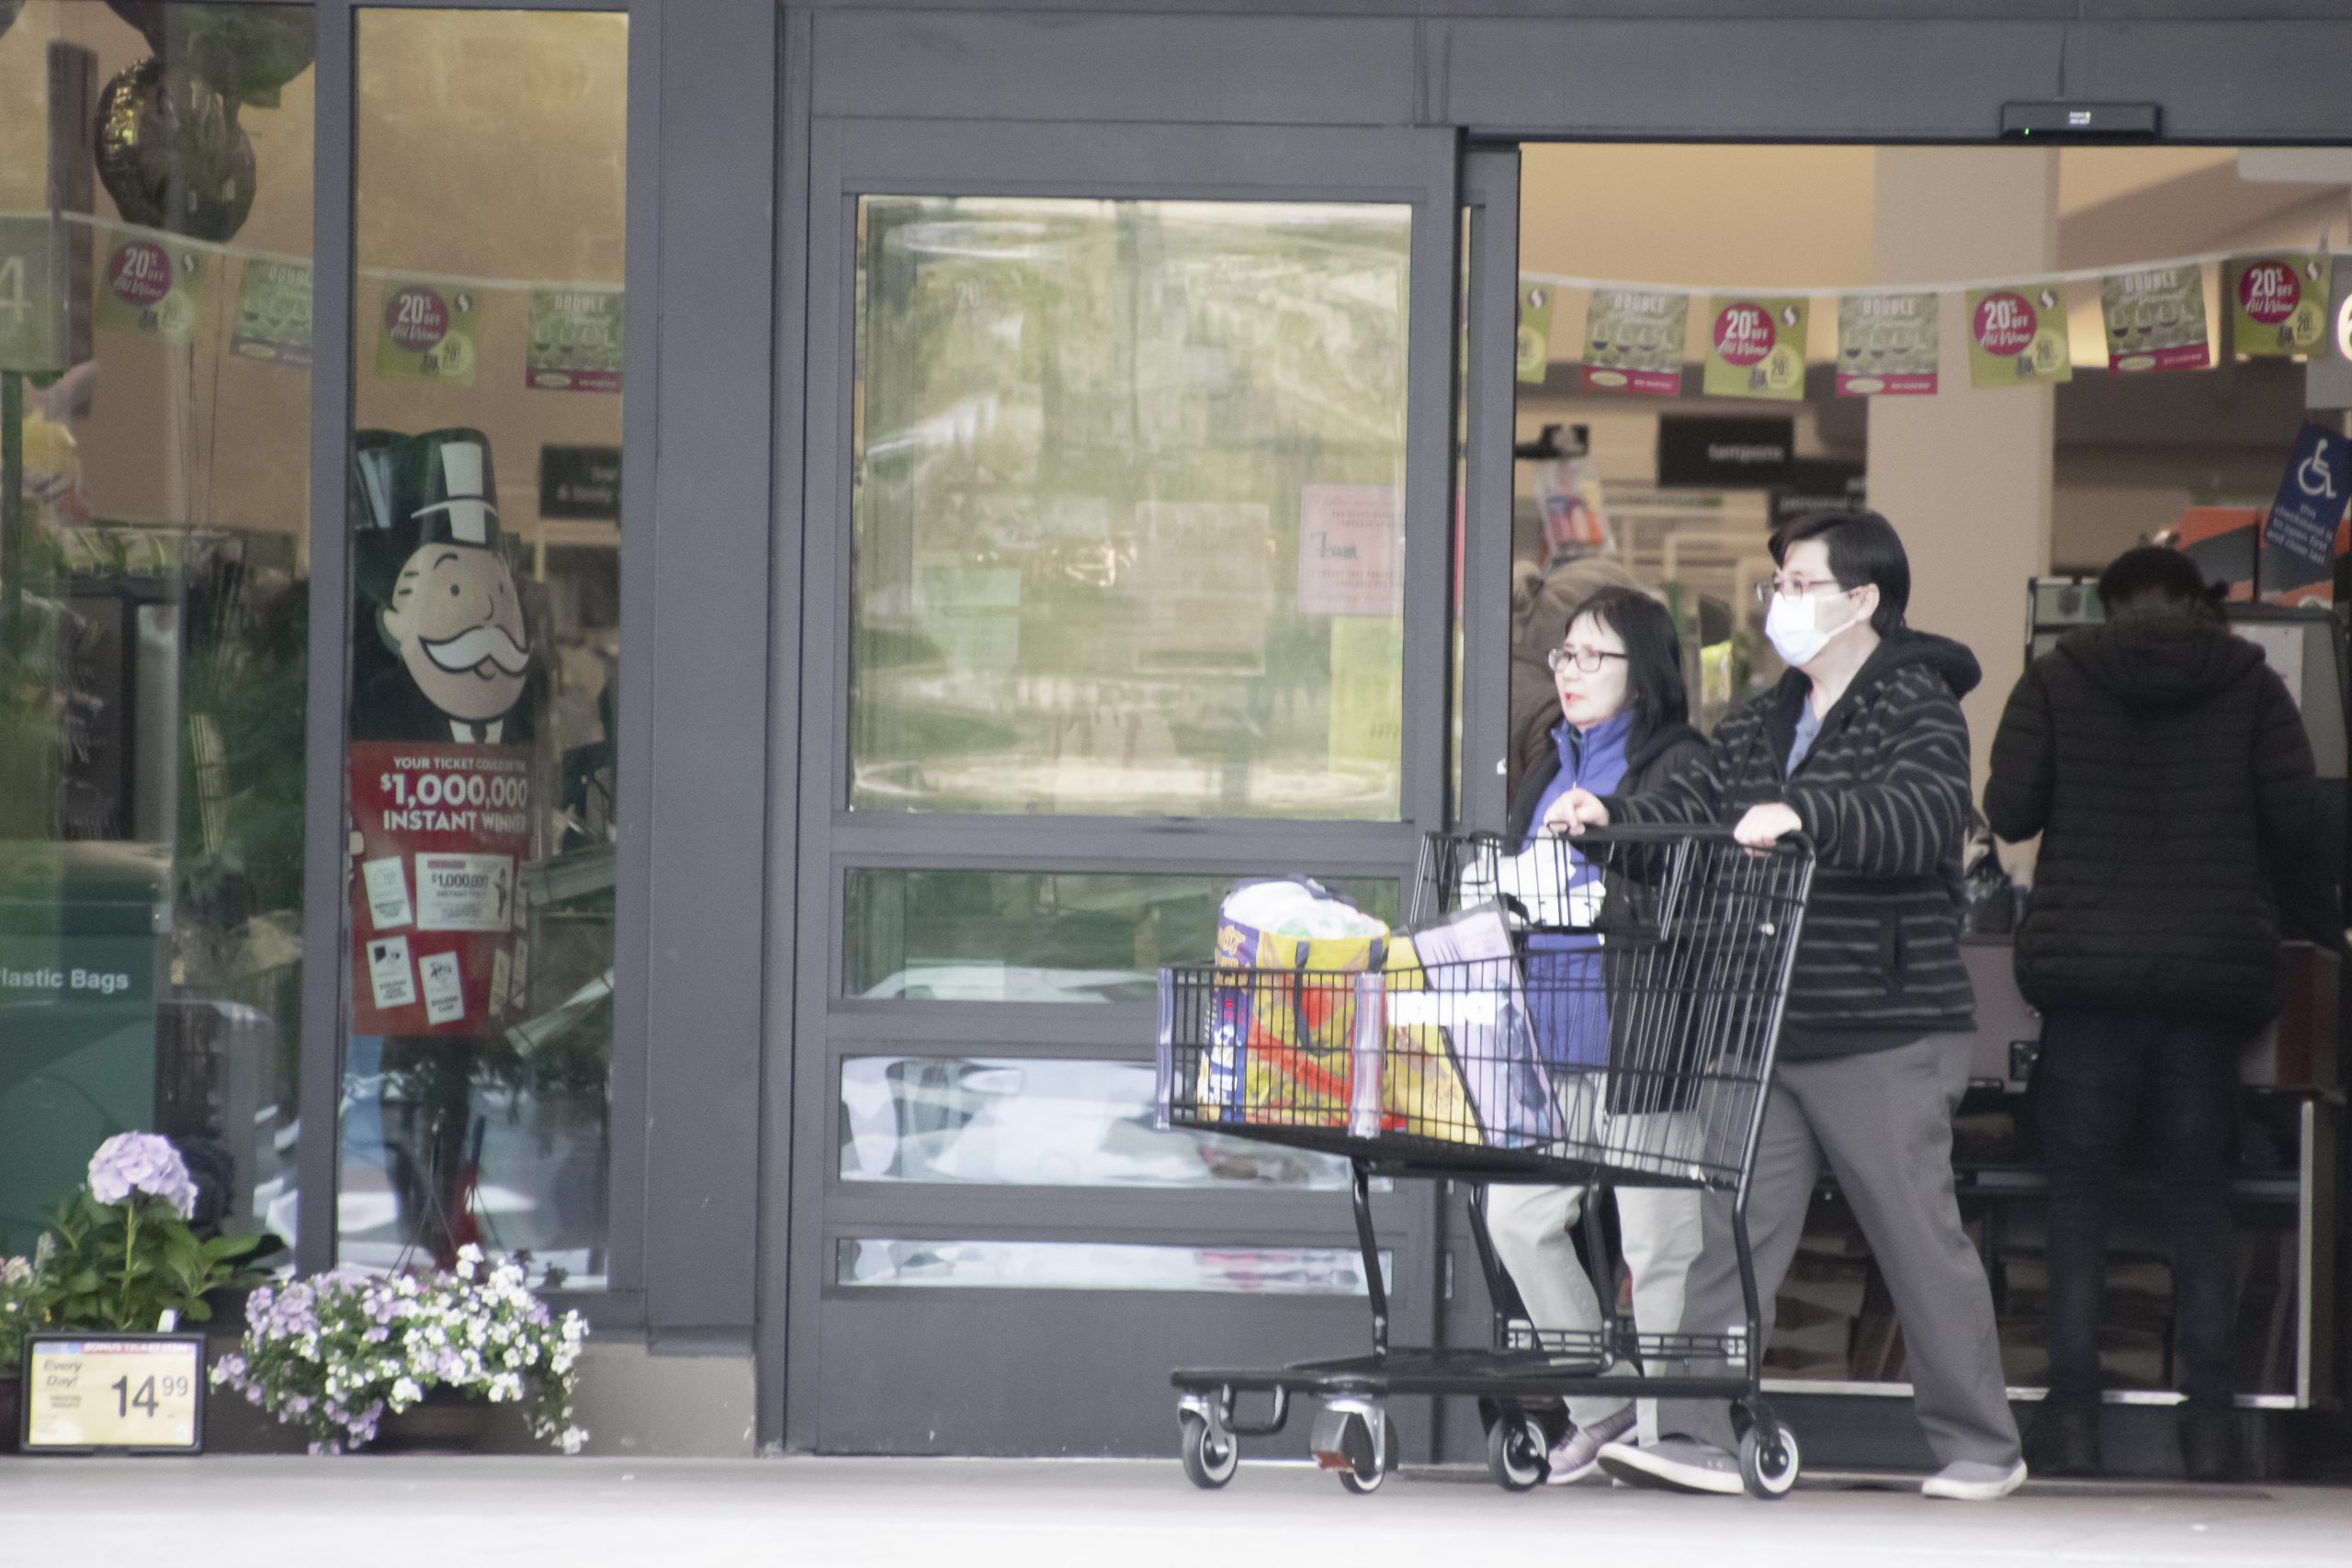 A couple exits a Safeway store in North Oakland on March 23, 2020. Photo by Scott Morris.